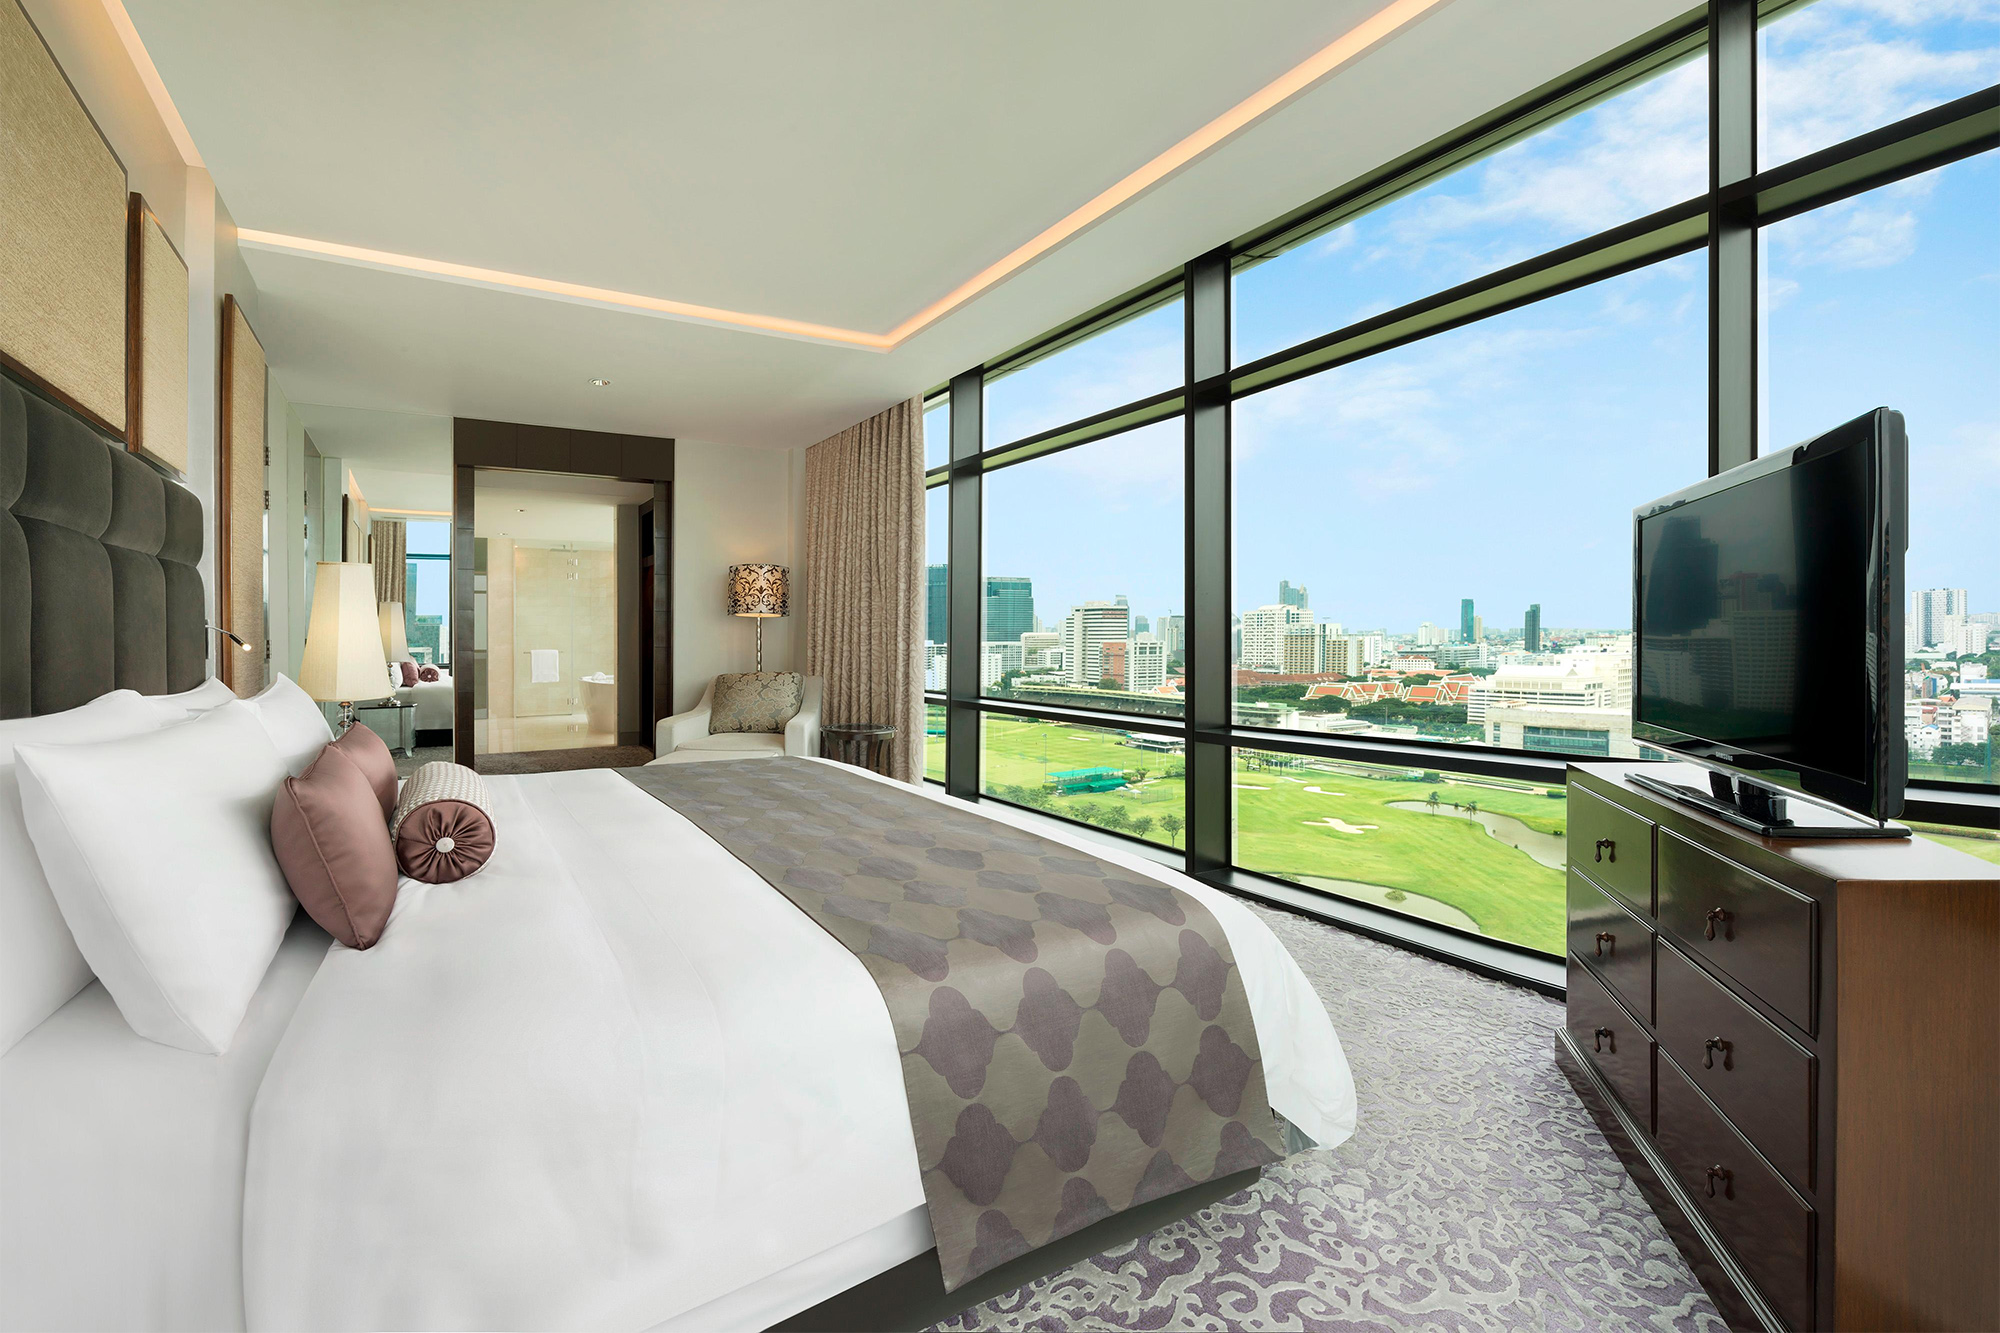 St Regis Bangkok (Marriott International)